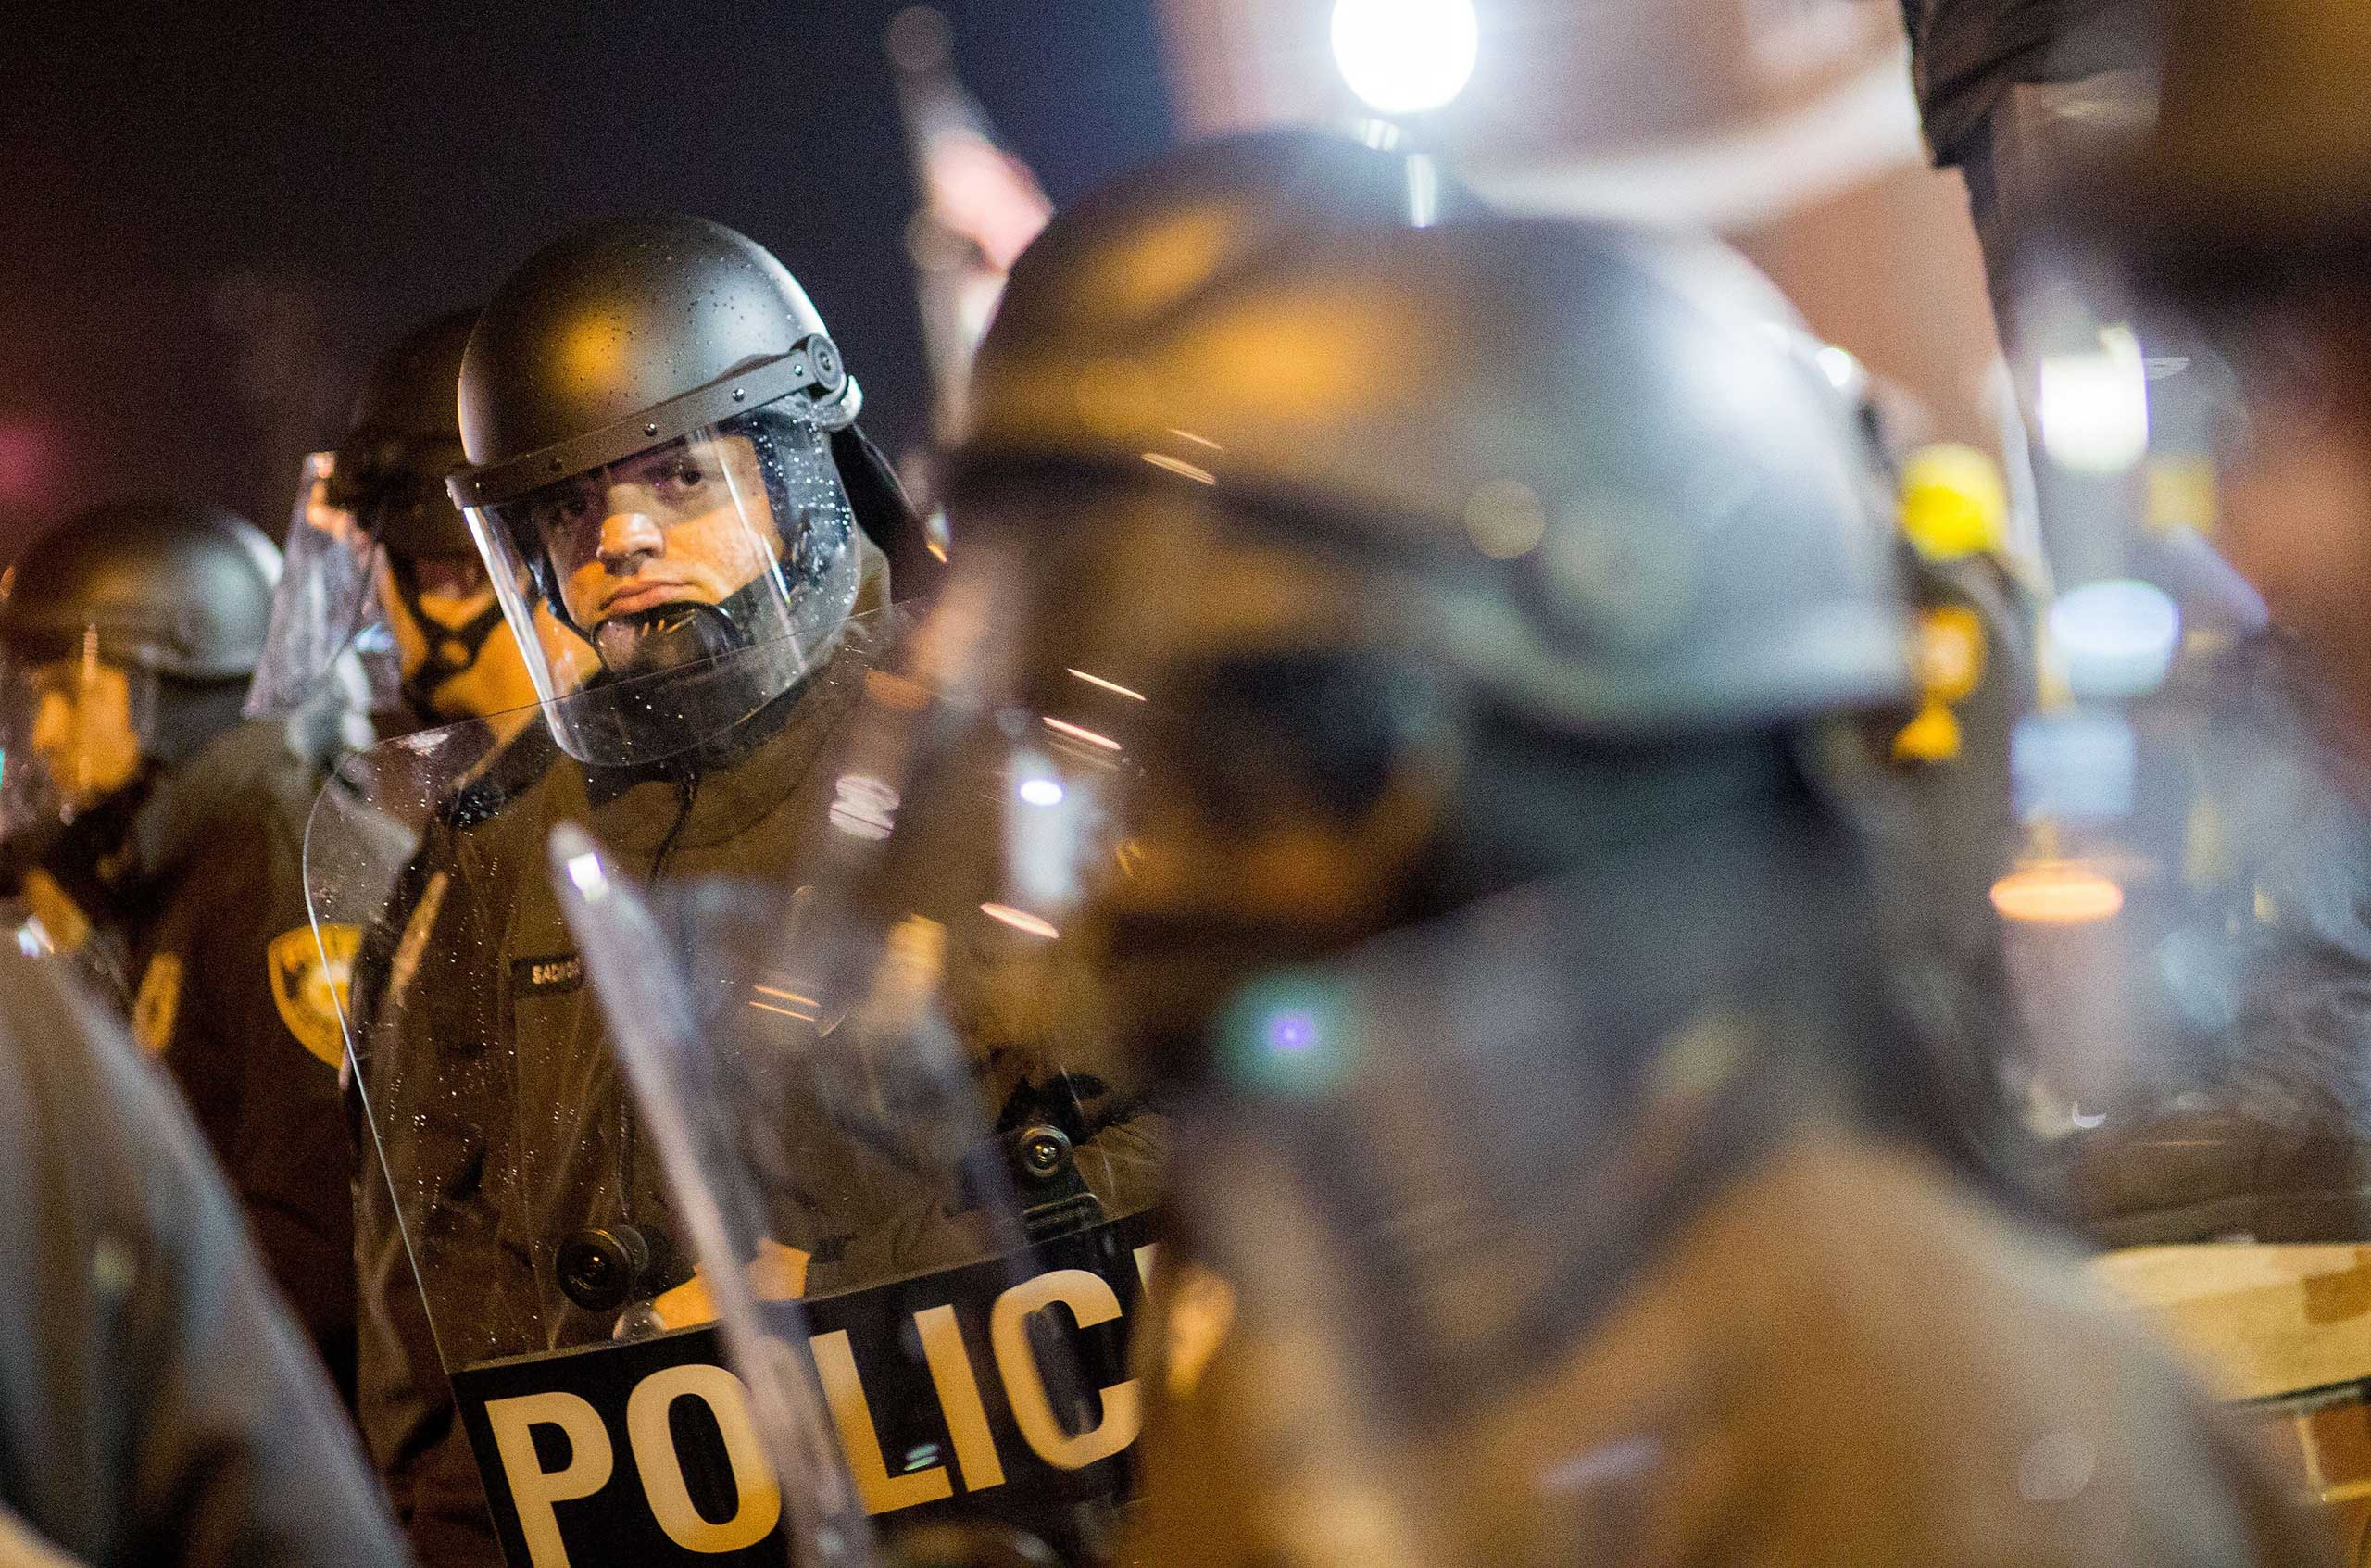 Police in riot gear observe protesters on the street near the Ferguson Police Station in Ferguson, Mo. on Nov. 23, 2014